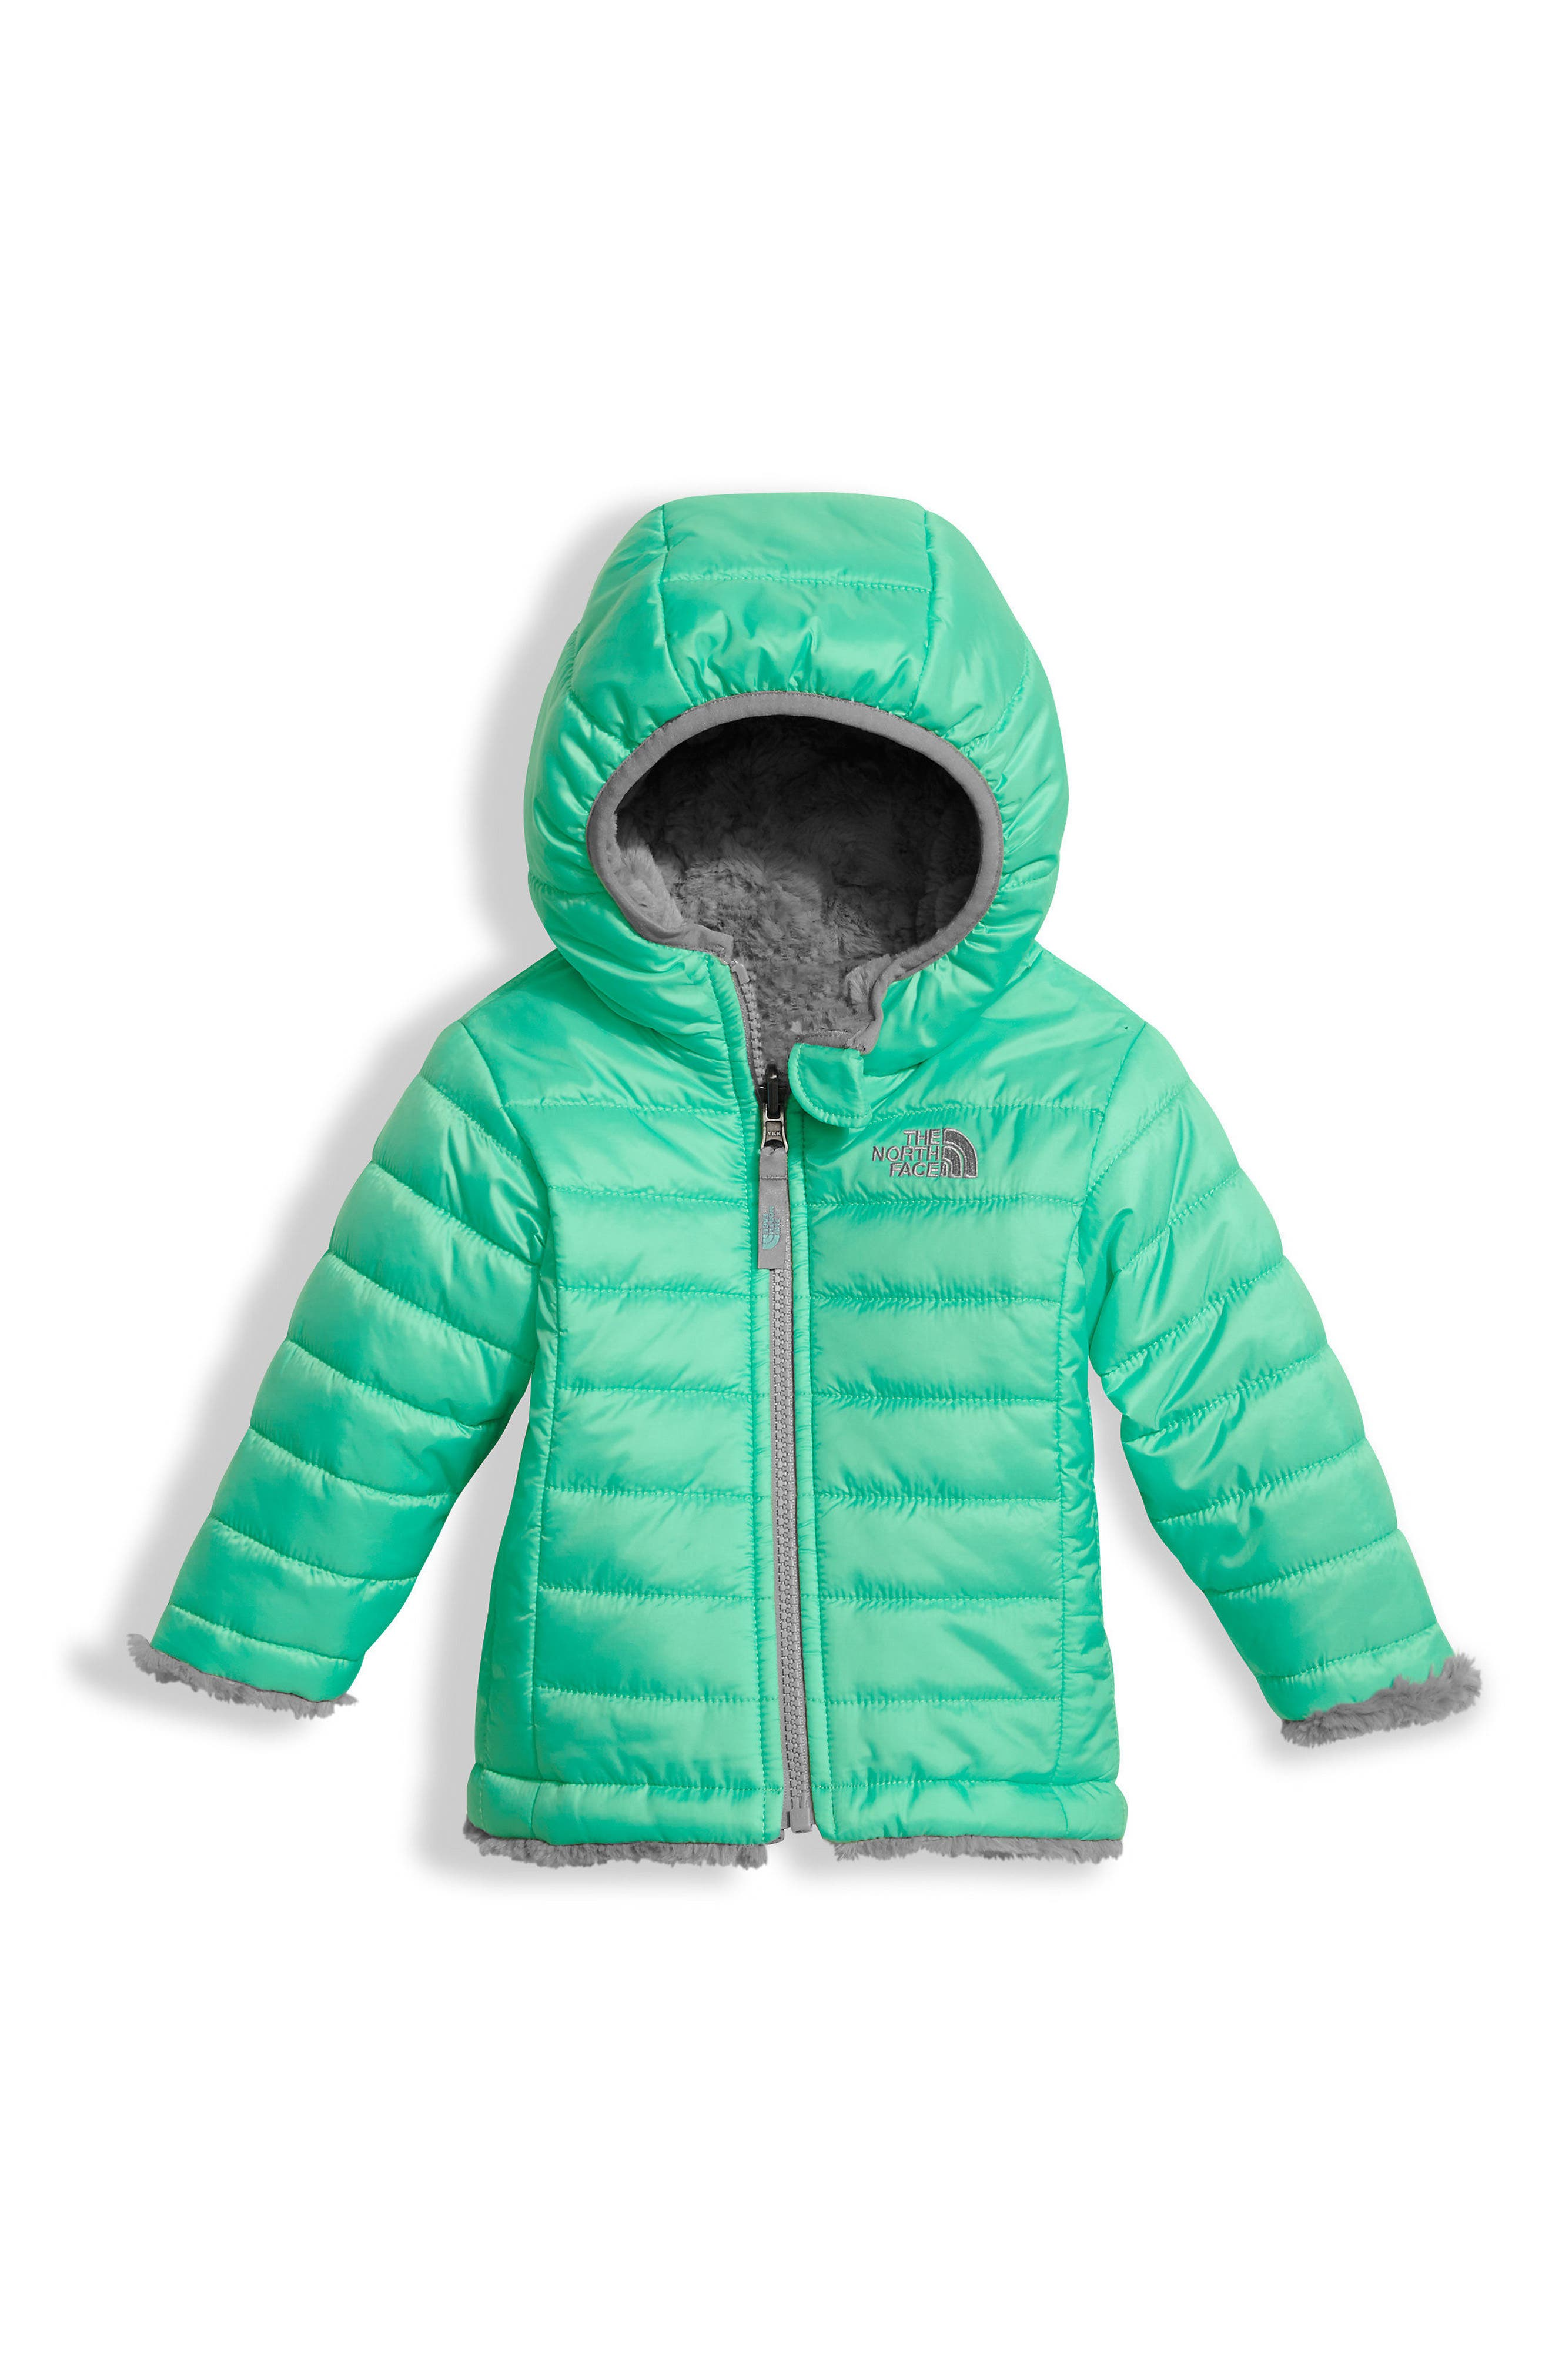 'Mossbud' Reversible Water Repellent Jacket,                         Main,                         color, 310